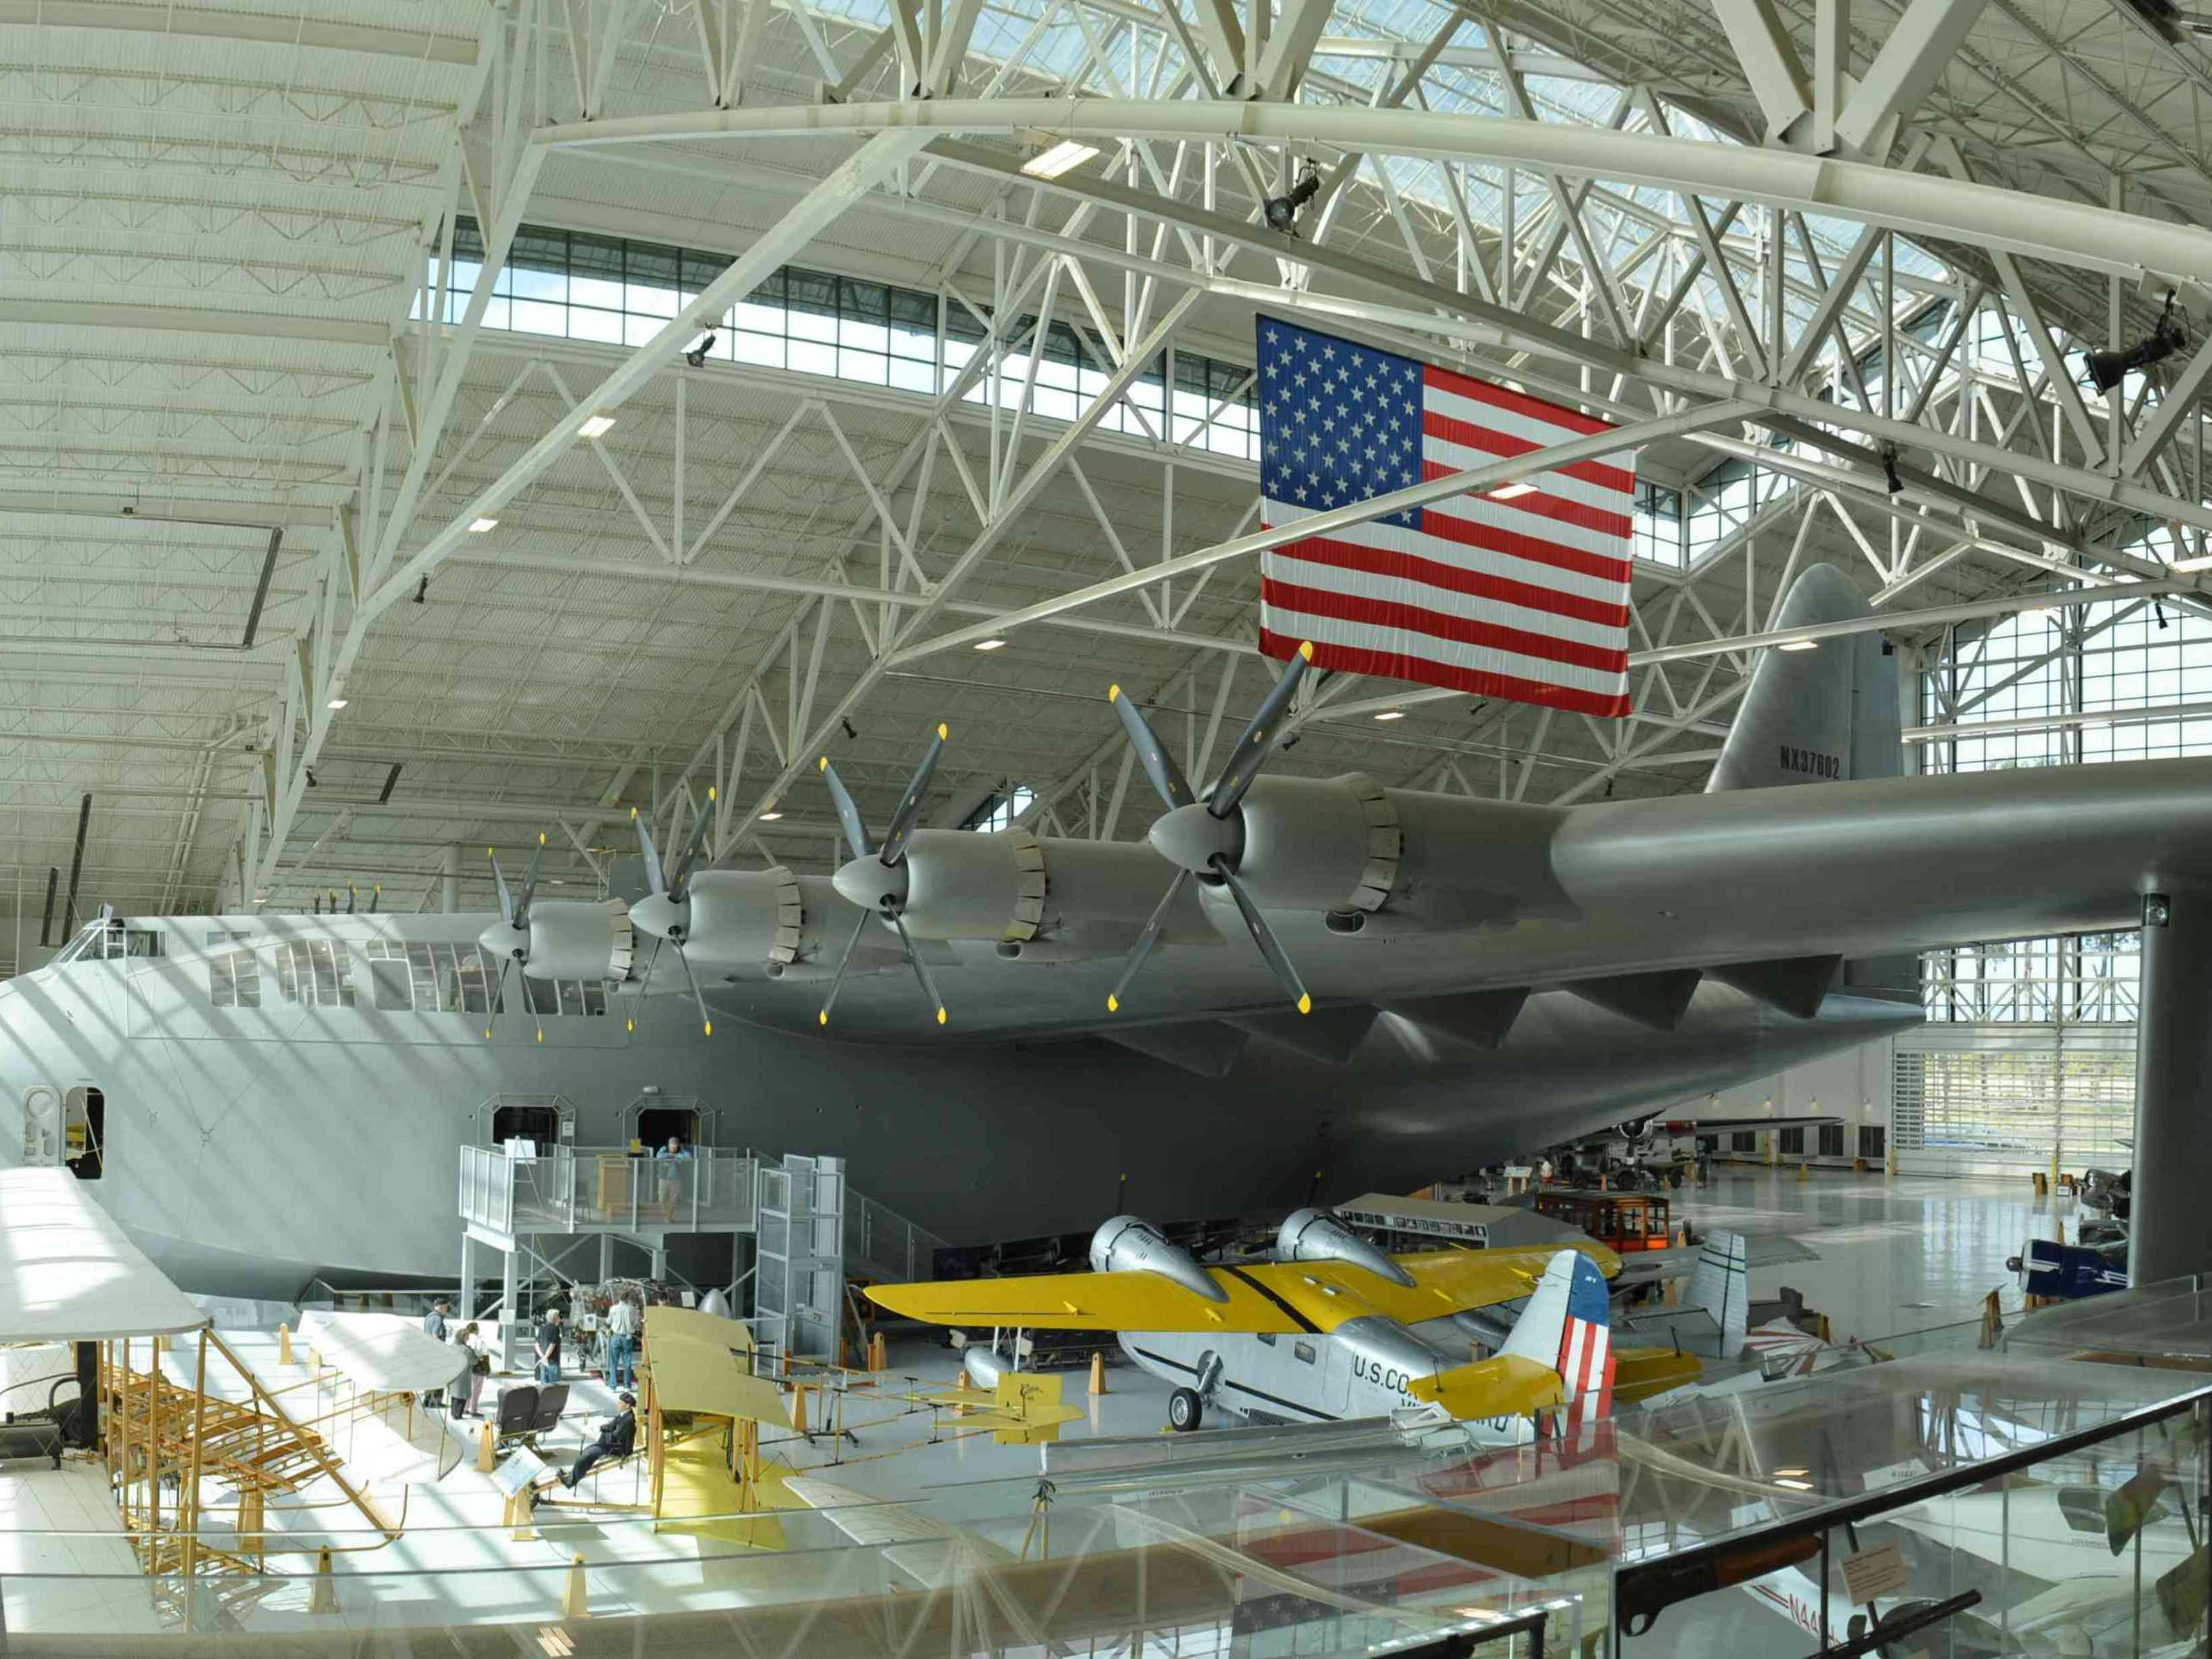 Evergreen Aviation & Space Museum located in McMinnville, Oregon